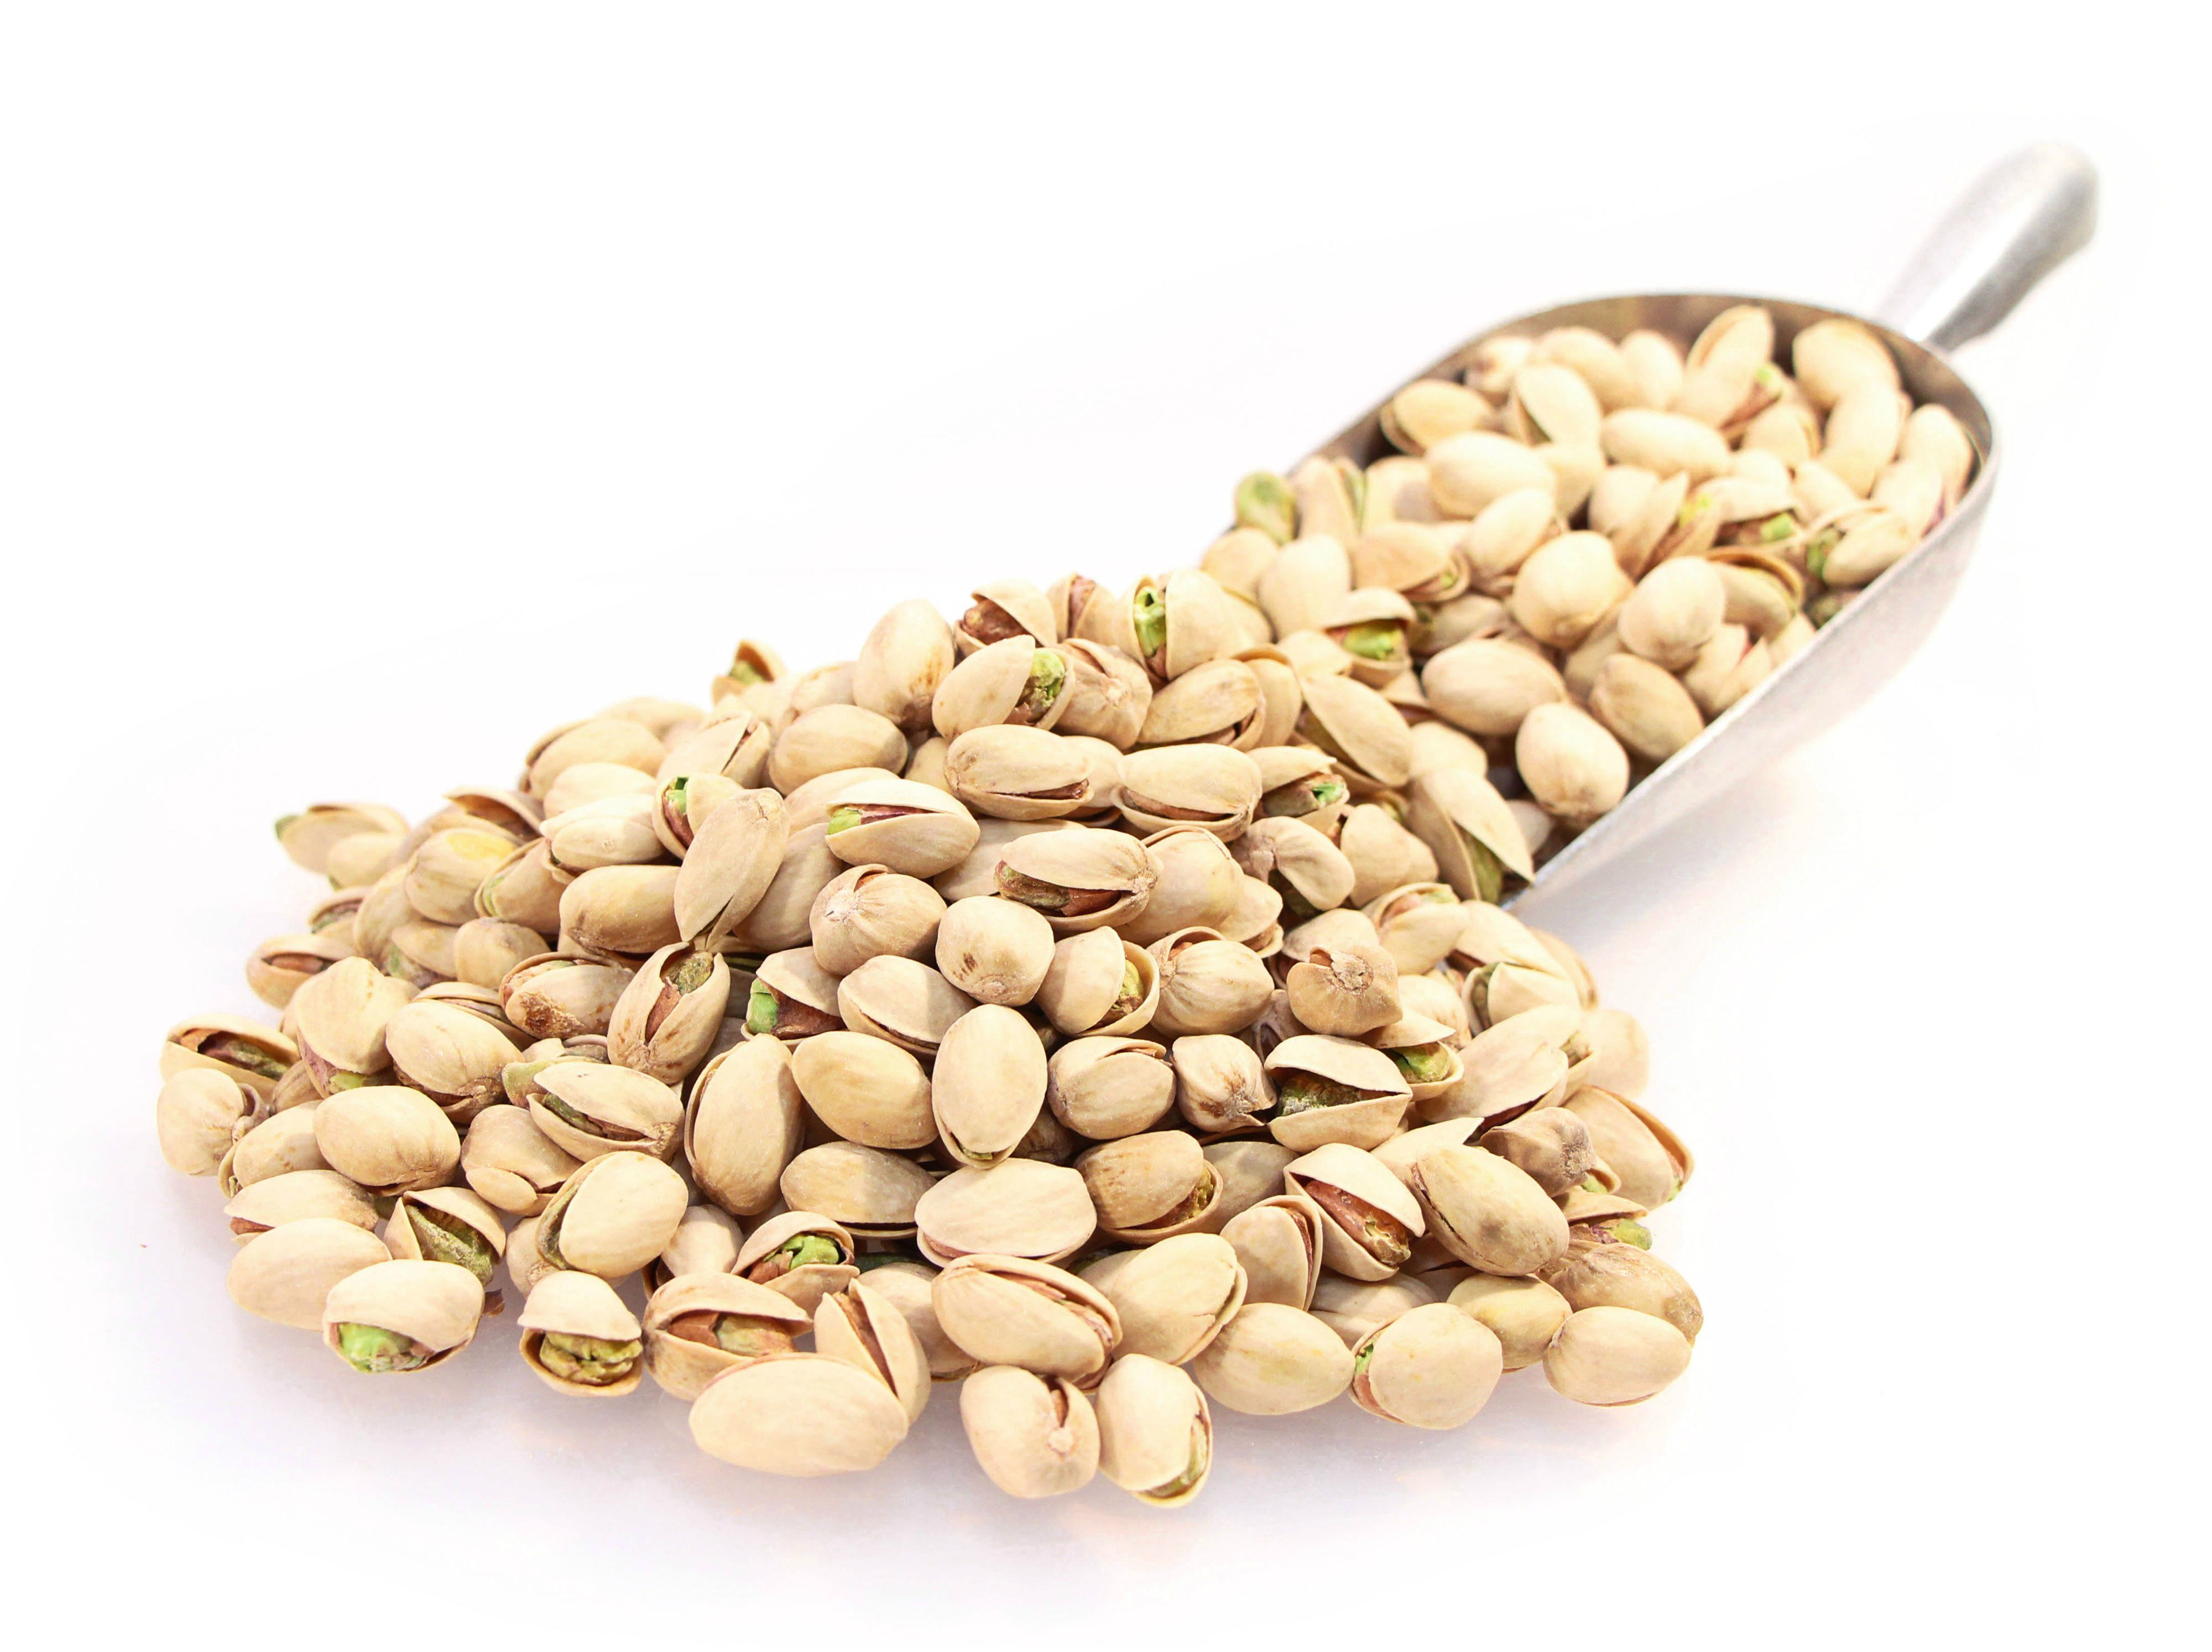 Roasted Salted Pistachios in Shell! California's pride and joy, roasted and lightly salted for your snacking pleasure!